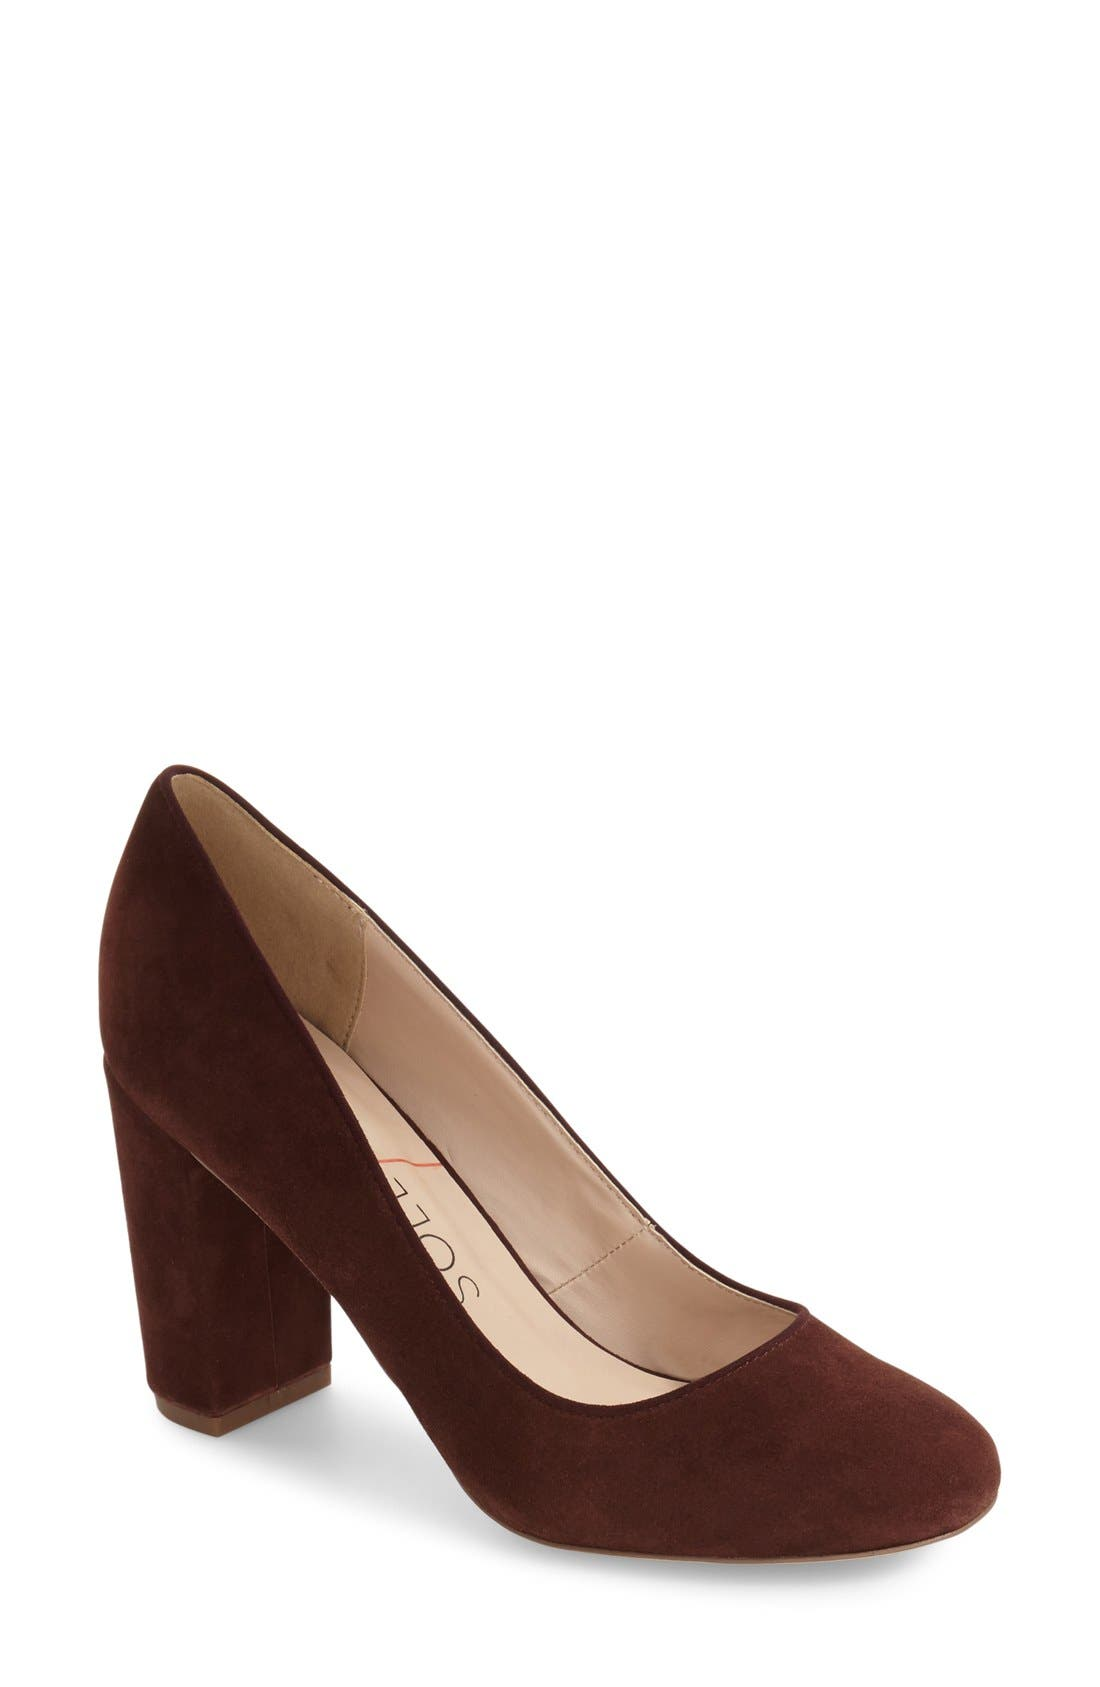 Giselle Block Heel Pump,                             Main thumbnail 1, color,                             Red Wine